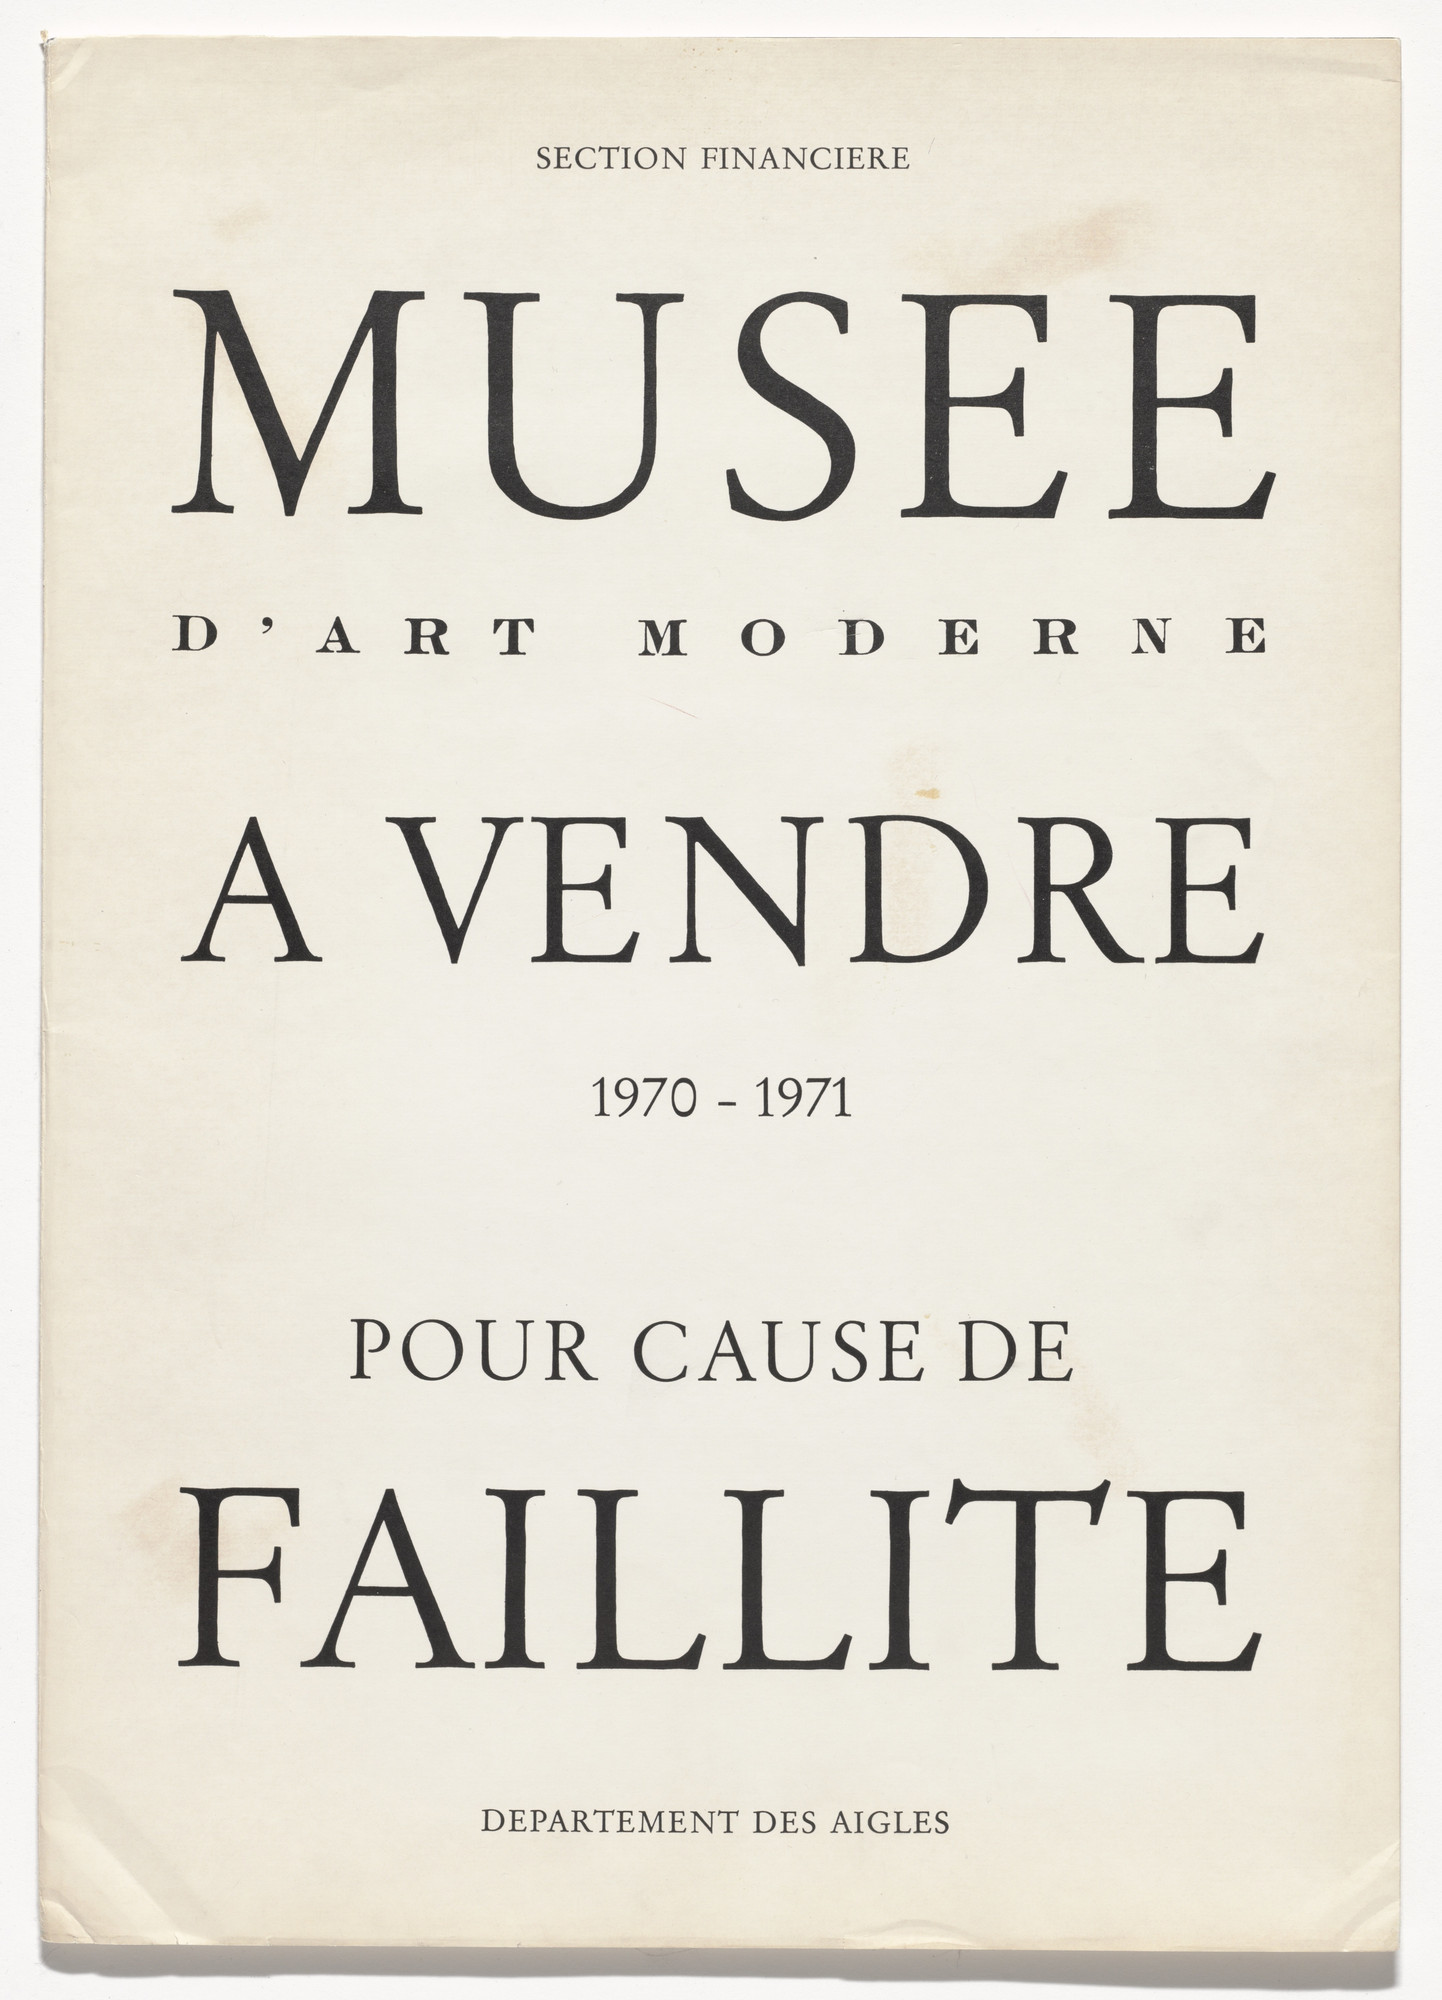 Marcel Broodthaers (Belgian, 1924–1976). Musée d'Art Moderne à vendre – pour cause de faillite (Museum of Modern Art for sale – due to bankruptcy). 1970–71. Artist's book, letterpress printed dust jacket wrapped around catalogue of Kӧlner Kunstmarkt '71 with artist's inscriptions, overall (folded, with catalog): 17 11/16 x 12 5/8 x 5/16 in. (45 x 32 x 0.8 cm). Publisher: Galerie Michael Werner, Cologne. Edition: 19. The Museum of Modern Art, New York. Partial gift of the Daled Collection and partial purchase through the generosity of Maja Oeri and Hans Bodenmann, Sue and Edgar Wachenheim III, Agnes Gund, Marlene Hess and James D. Zirin, Marie-Josée and Henry R. Kravis, and Jerry I. Speyer and Katherine G. Farley, 2011. © 2016 Estate of Marcel Broodthaers / Artists Rights Society (ARS), New York / SABAM, Brussels